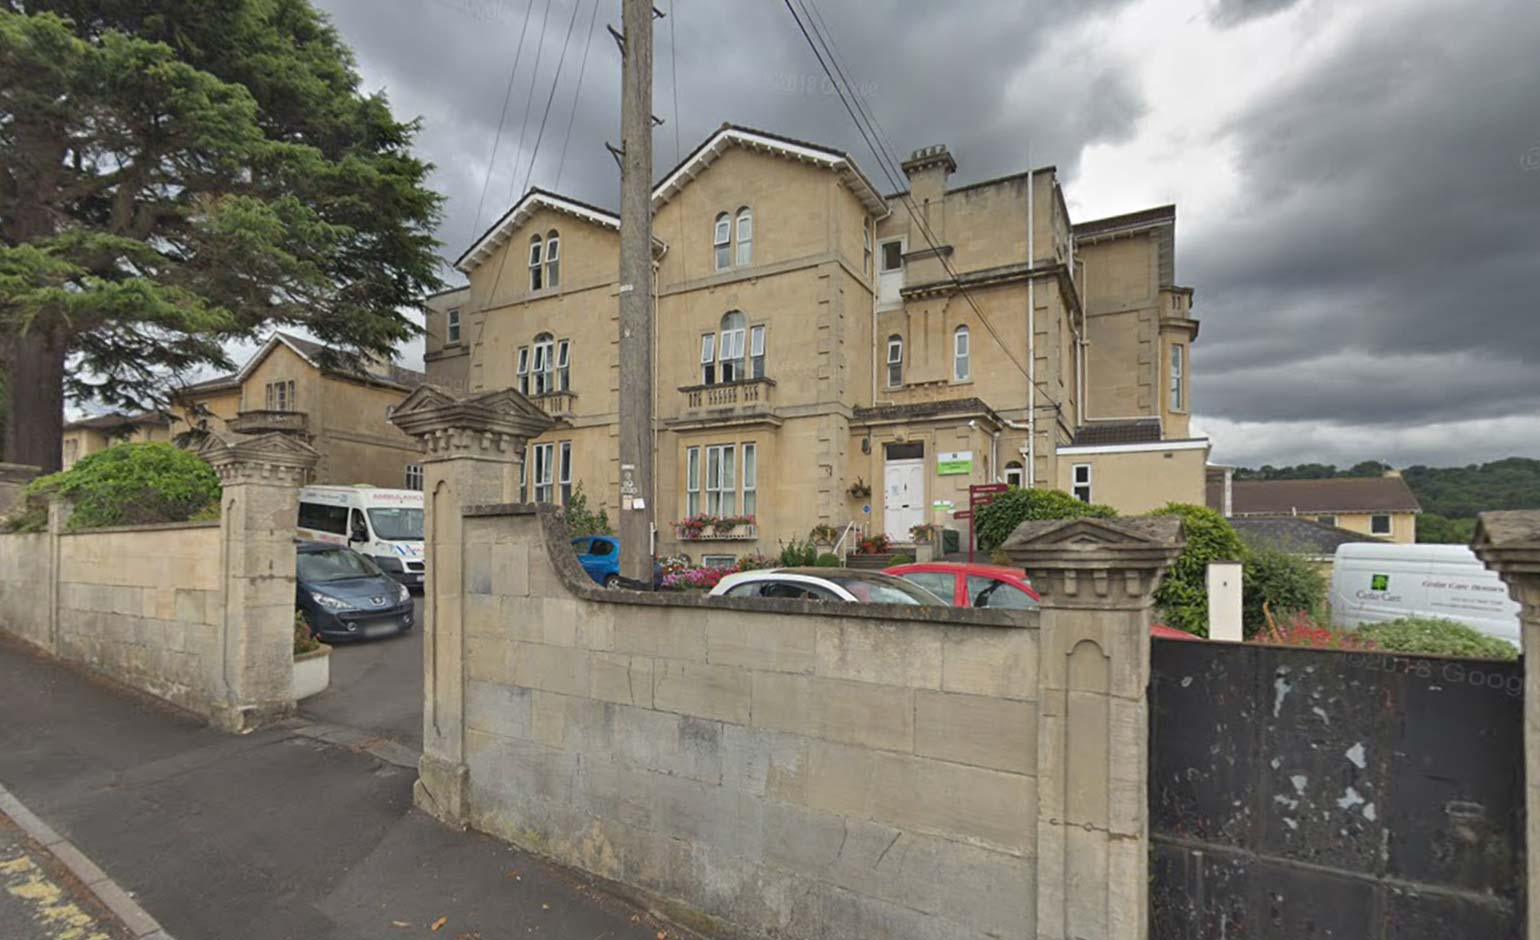 Plans to extend 52-bed care home in Bath to be revisited after judicial review